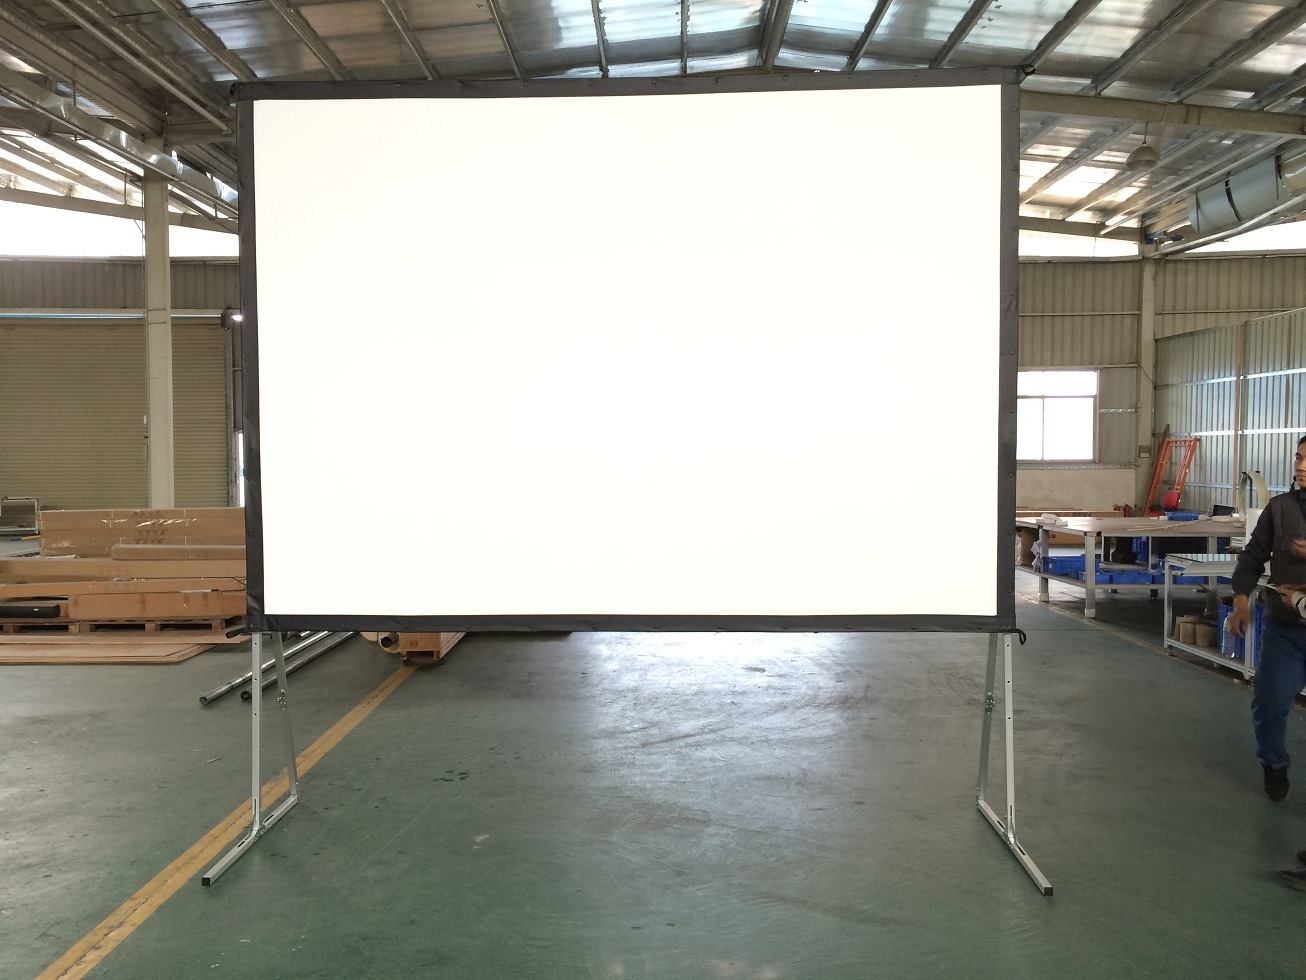 Fast Folding Projection Screen with Draper Kits Custom Sizes